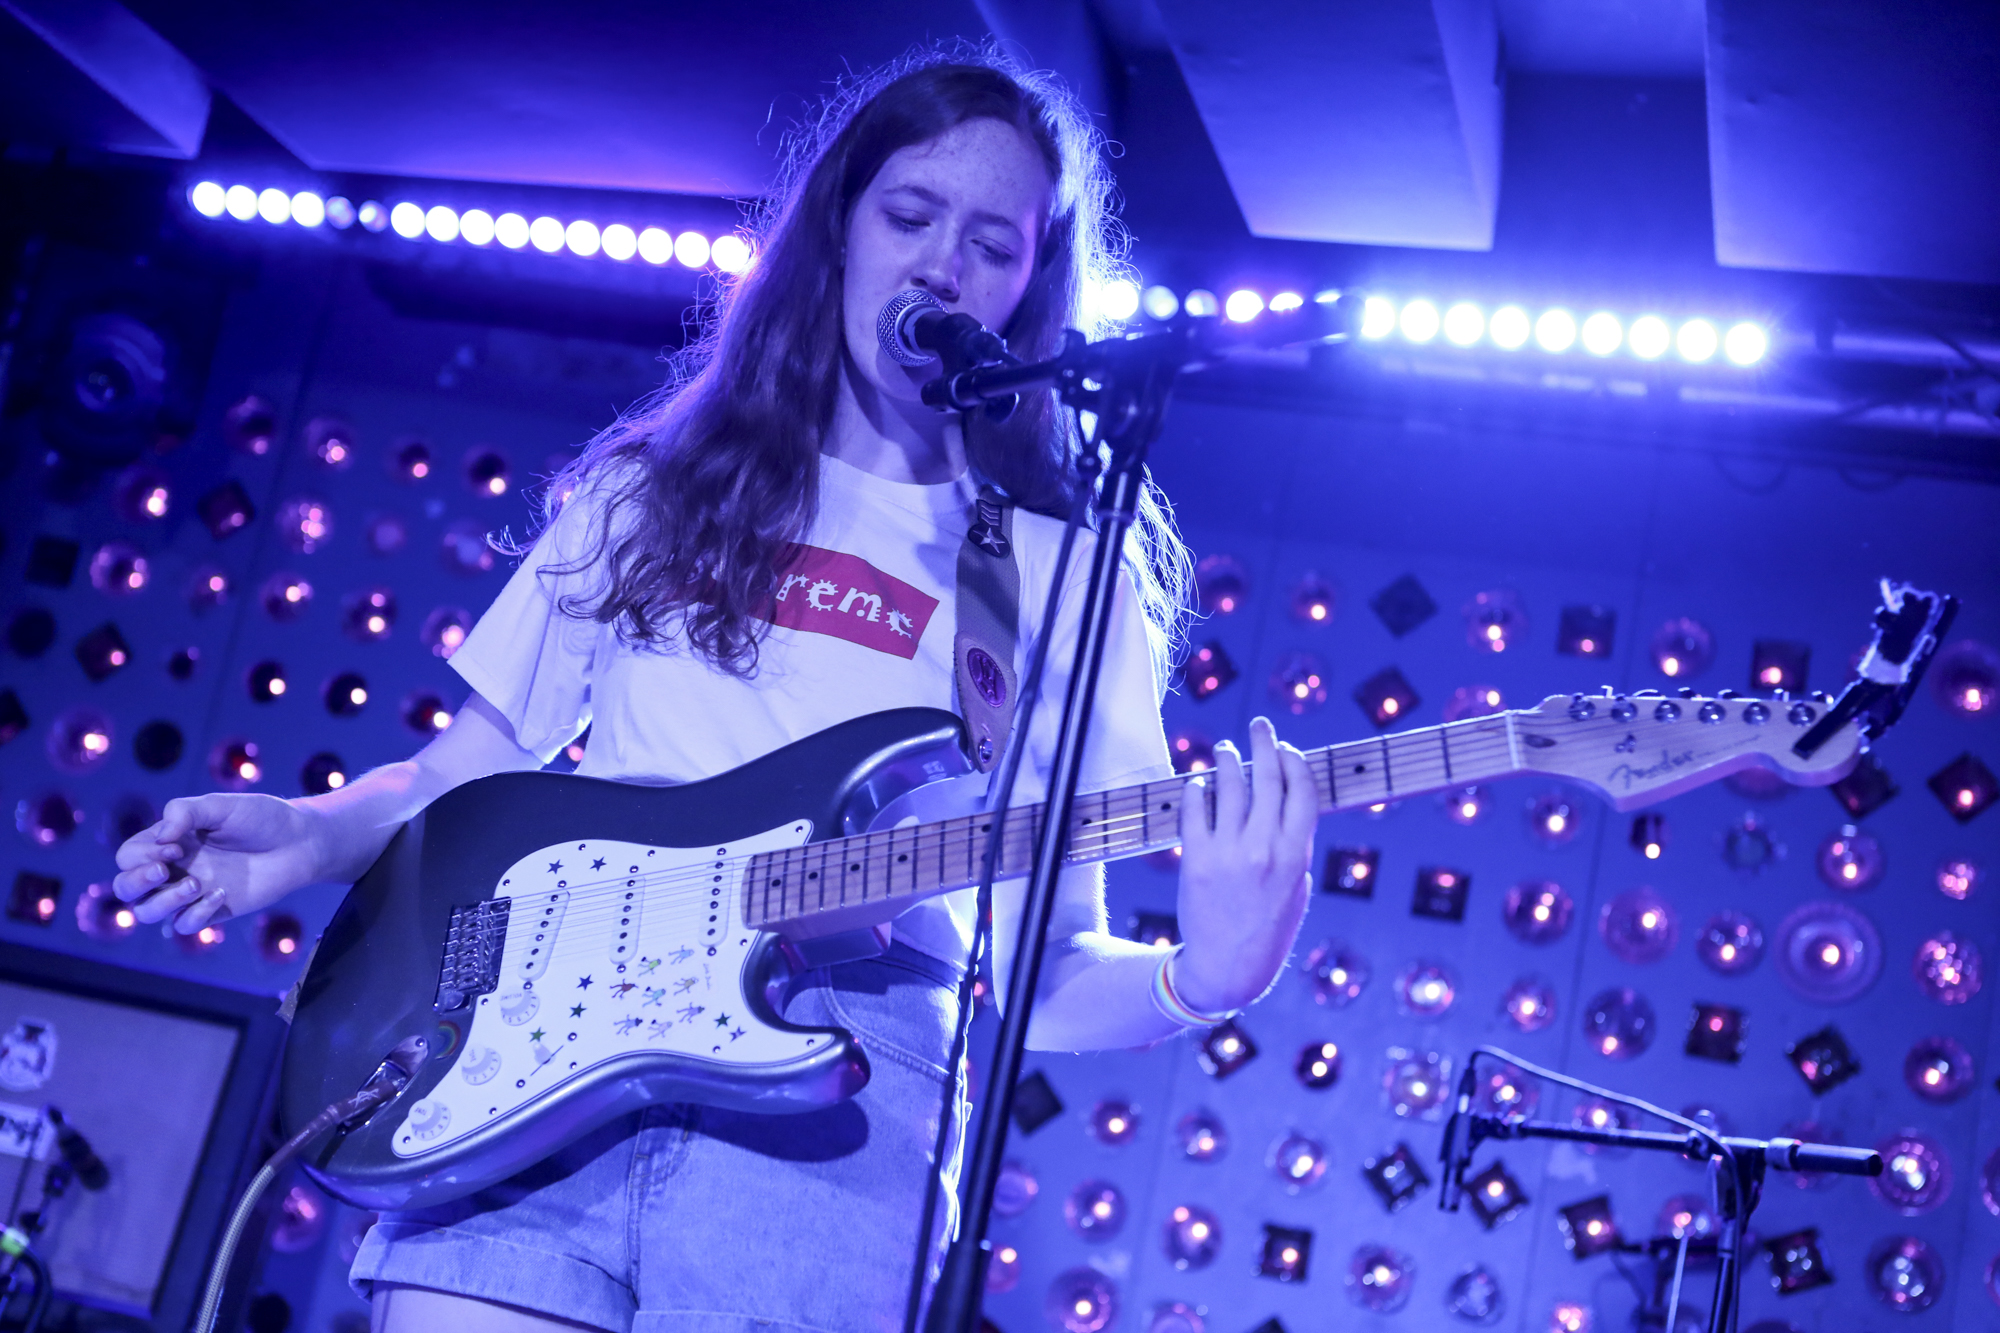 Sidney Gish plays the Double Double Whammy x GLRMIC x Terrorbird Media day party during Northside Festival at Baby's All Right in Williamsburg, Brooklyn, New York on June 9, 2018. (© Michael Katzif - Do not use or republish without prior consent.)